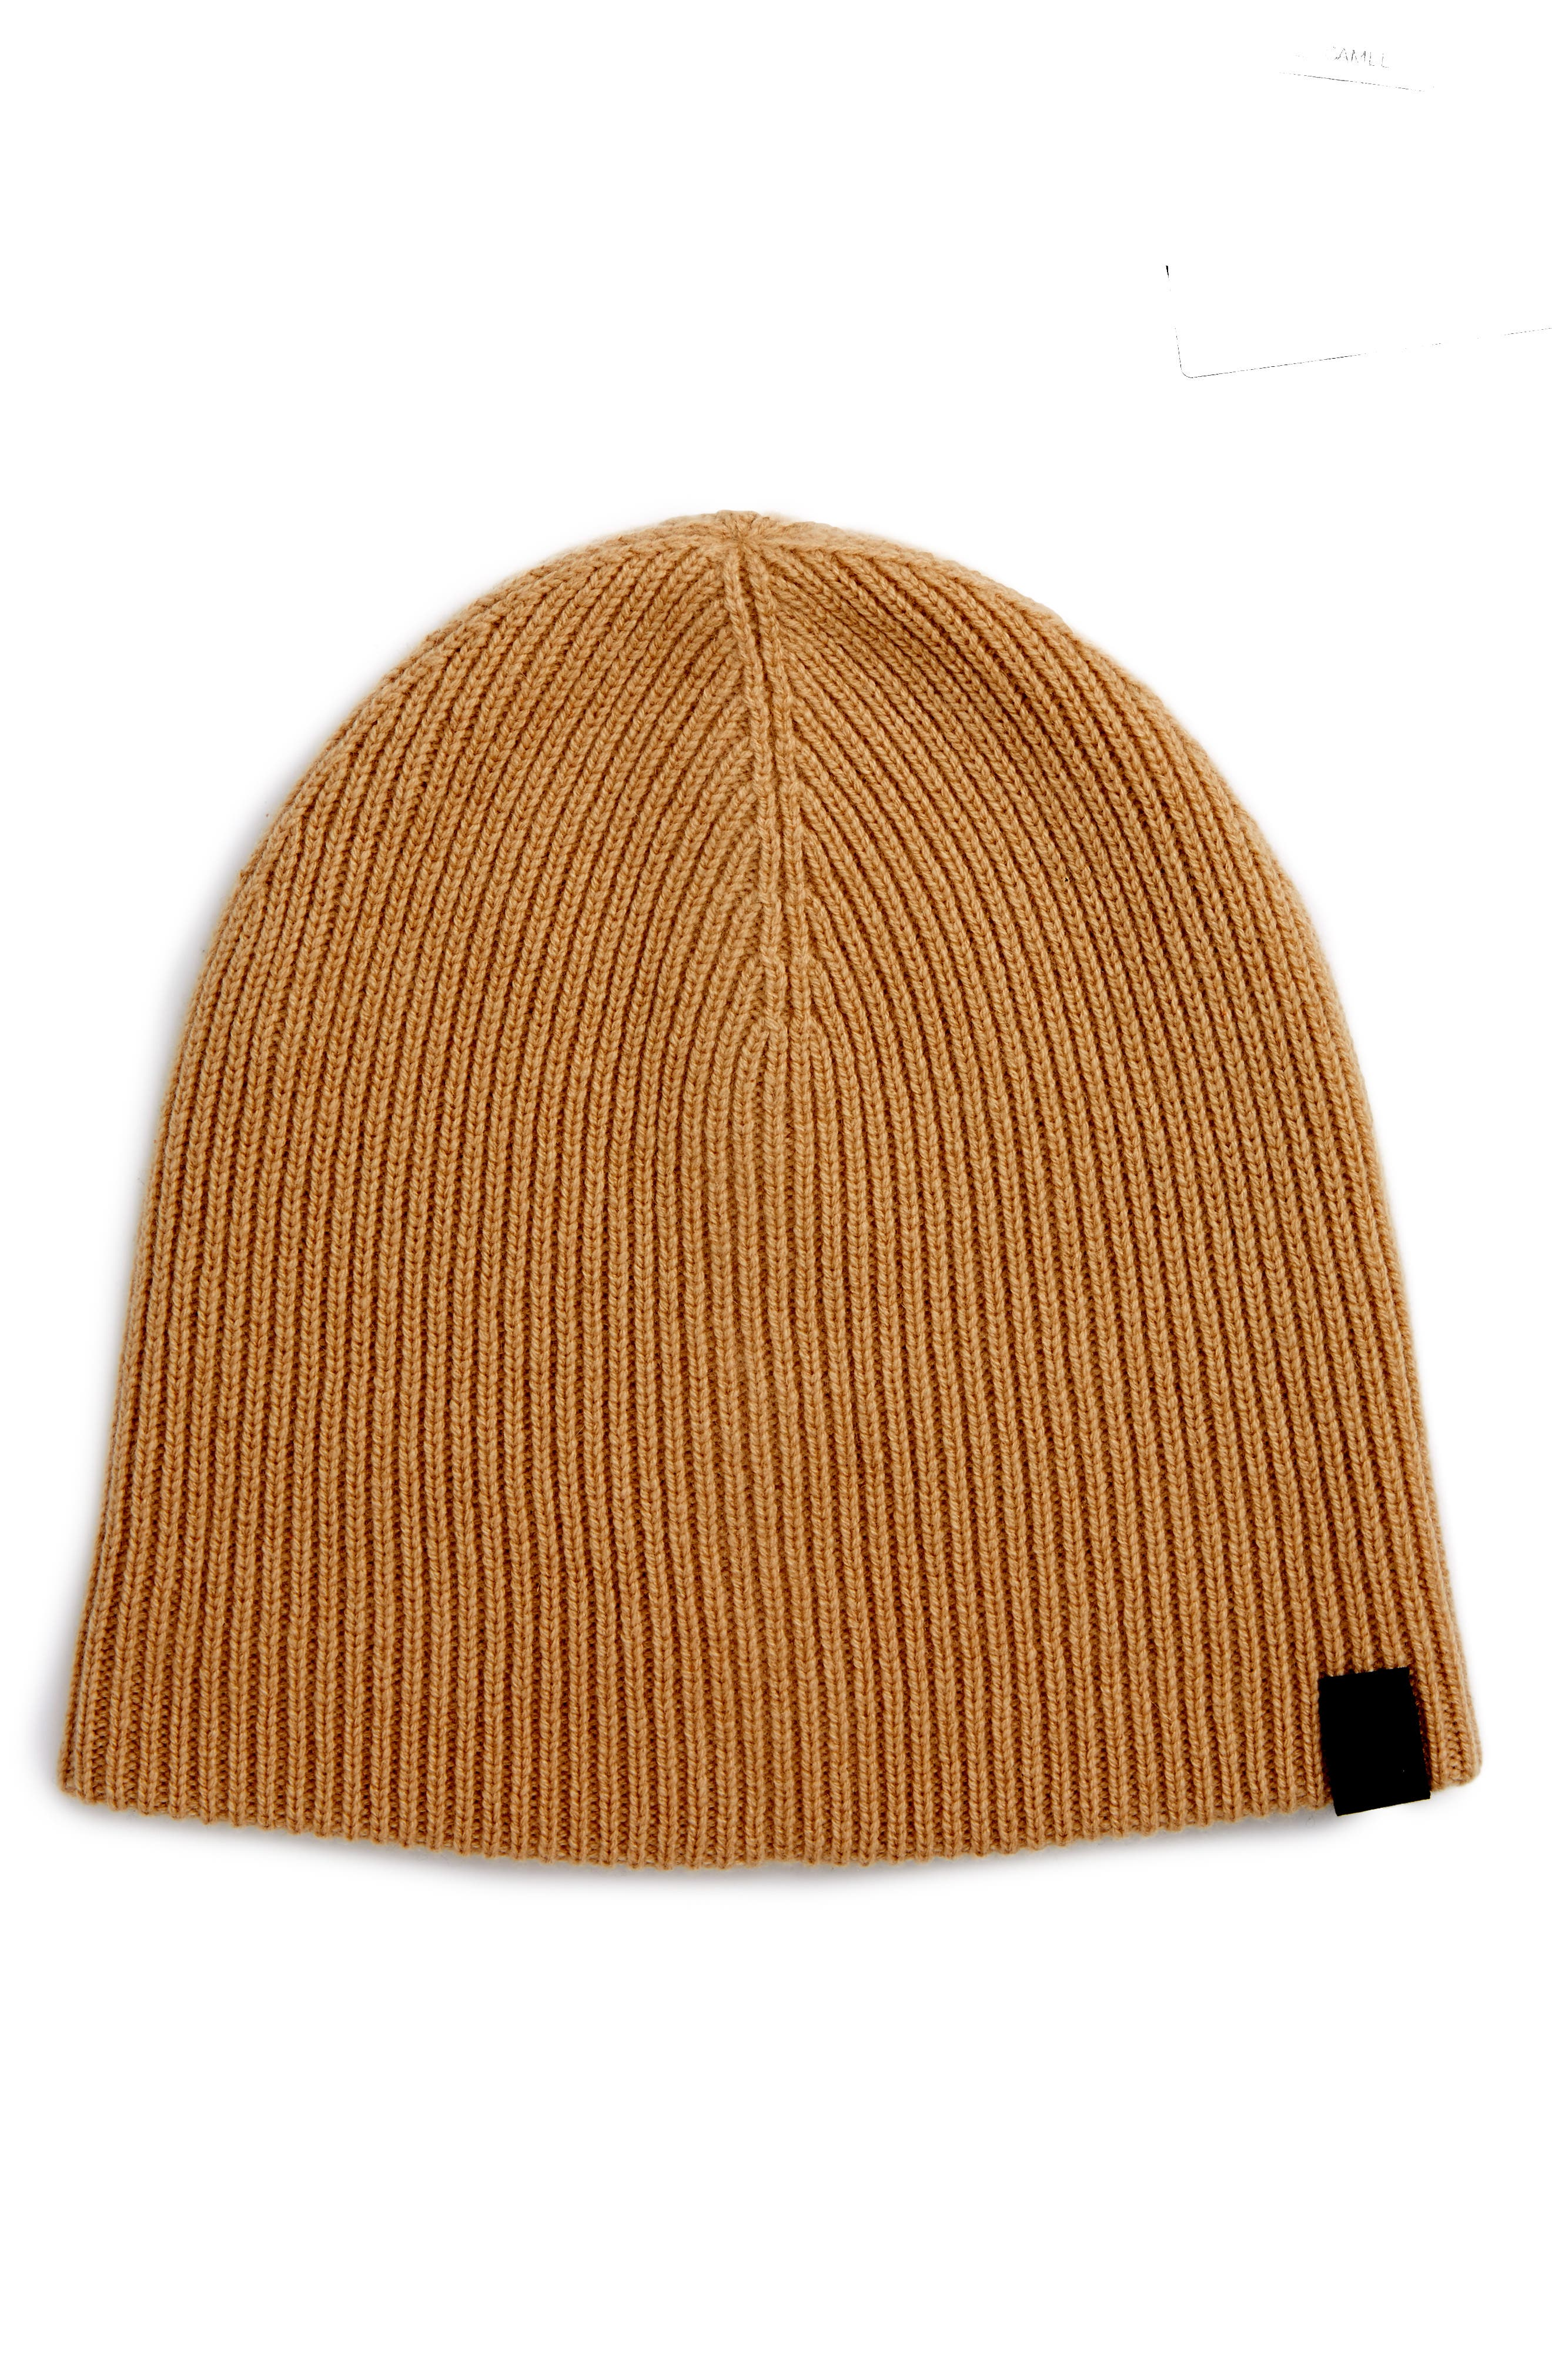 Alternate Image 1 Selected - rag & bone Ace Cashmere Beanie